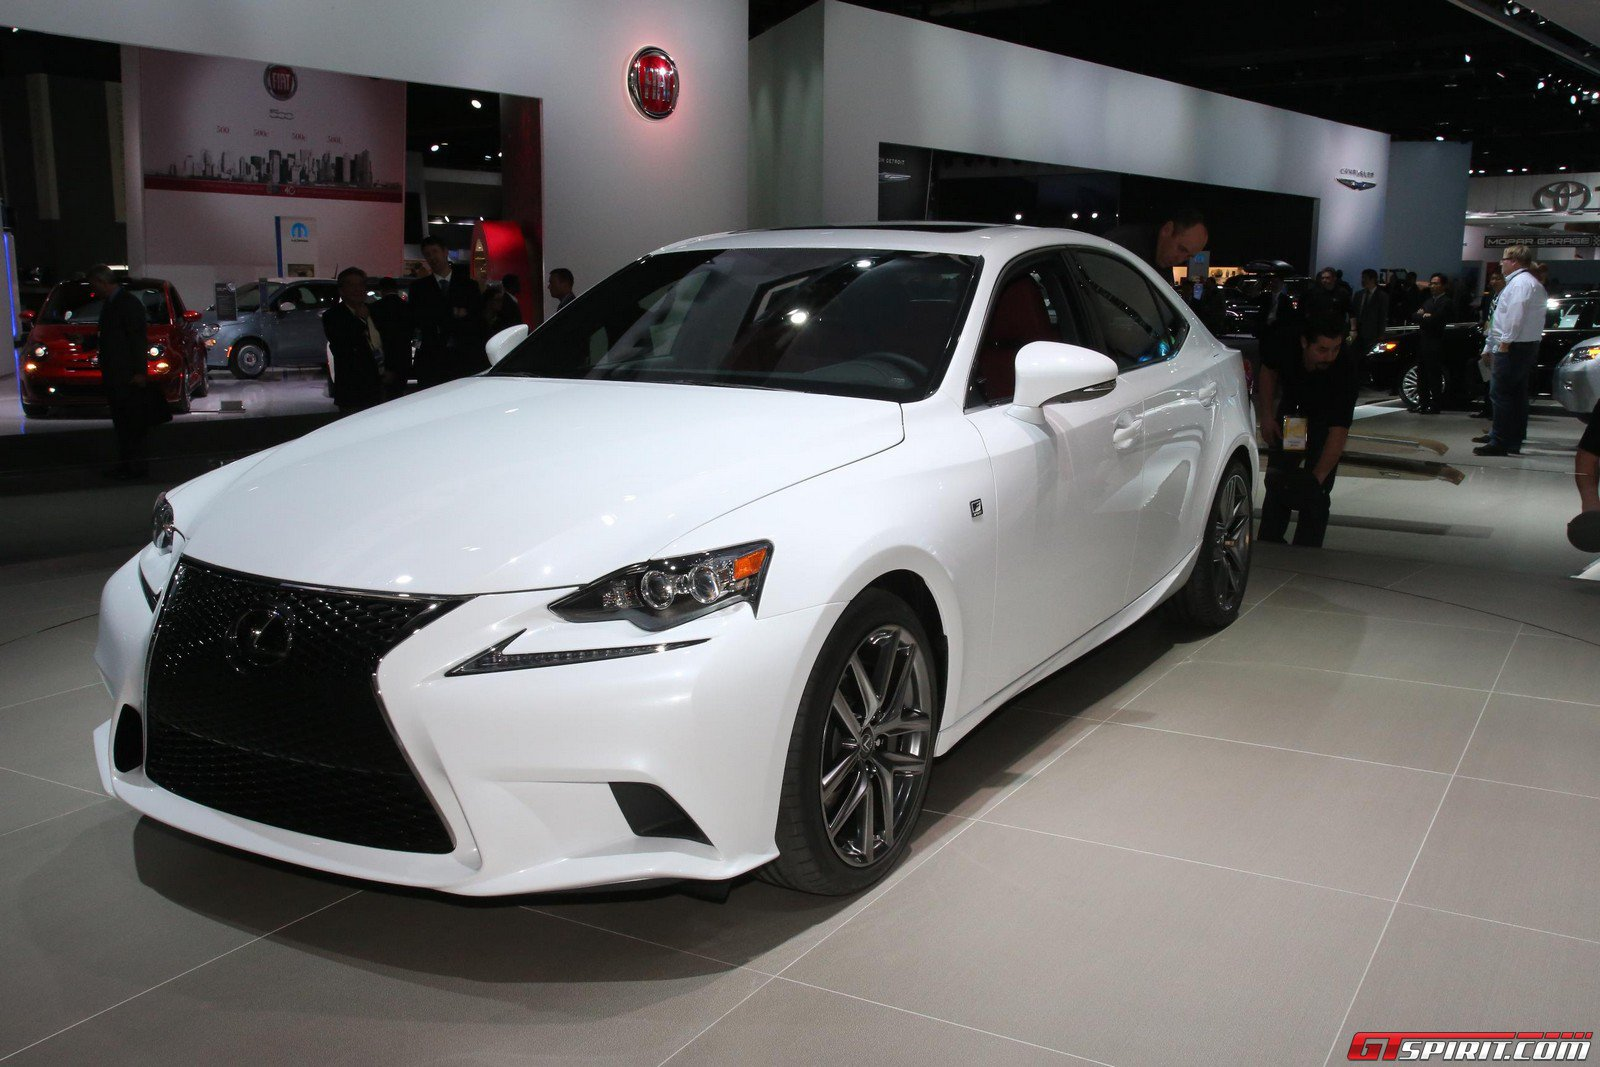 2013 Lexus Is F #3